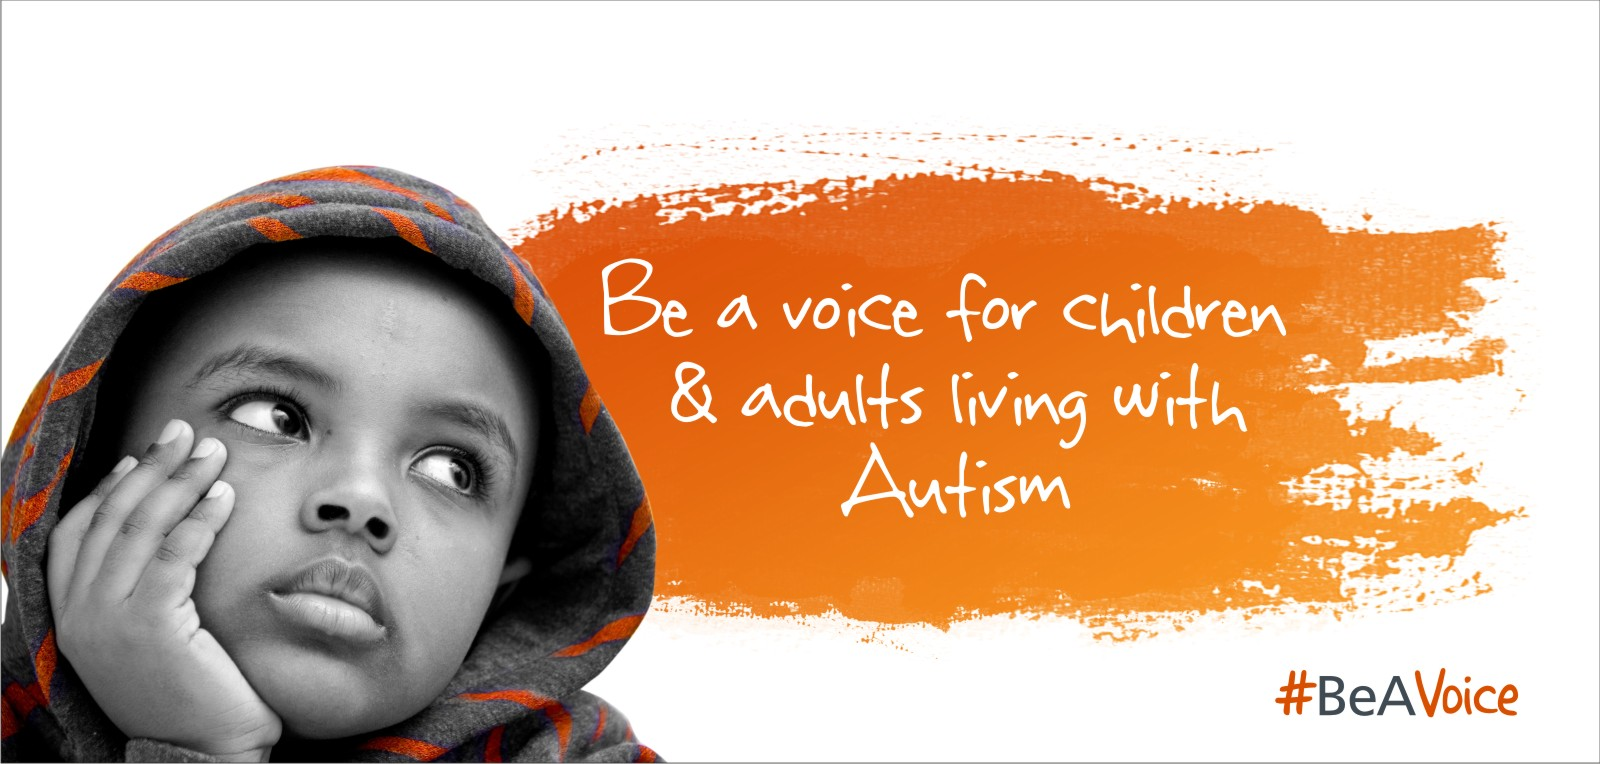 Be a voice for children & adults living with Autism